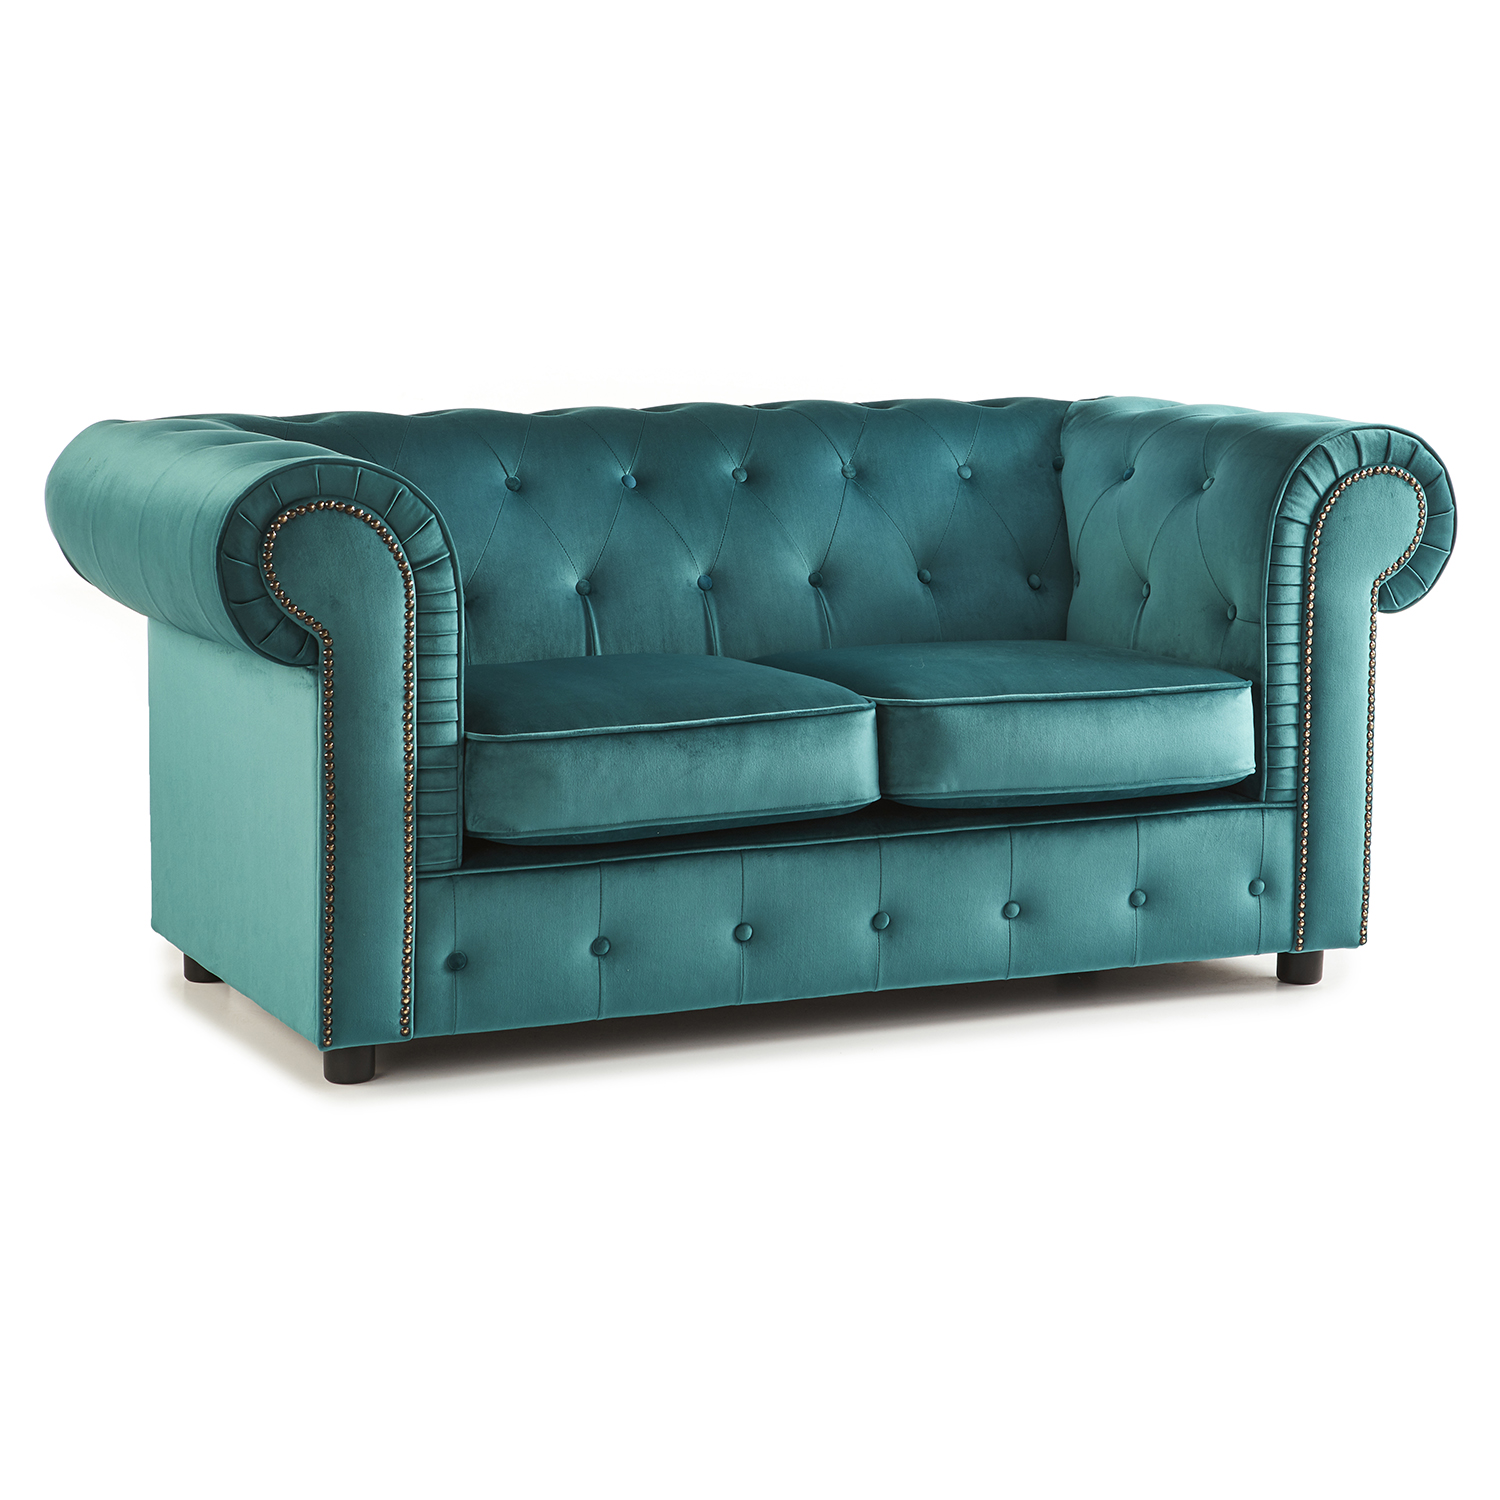 The Ashcroft Soft Velvet Chesterfield 2 Seater Sofa - Teal